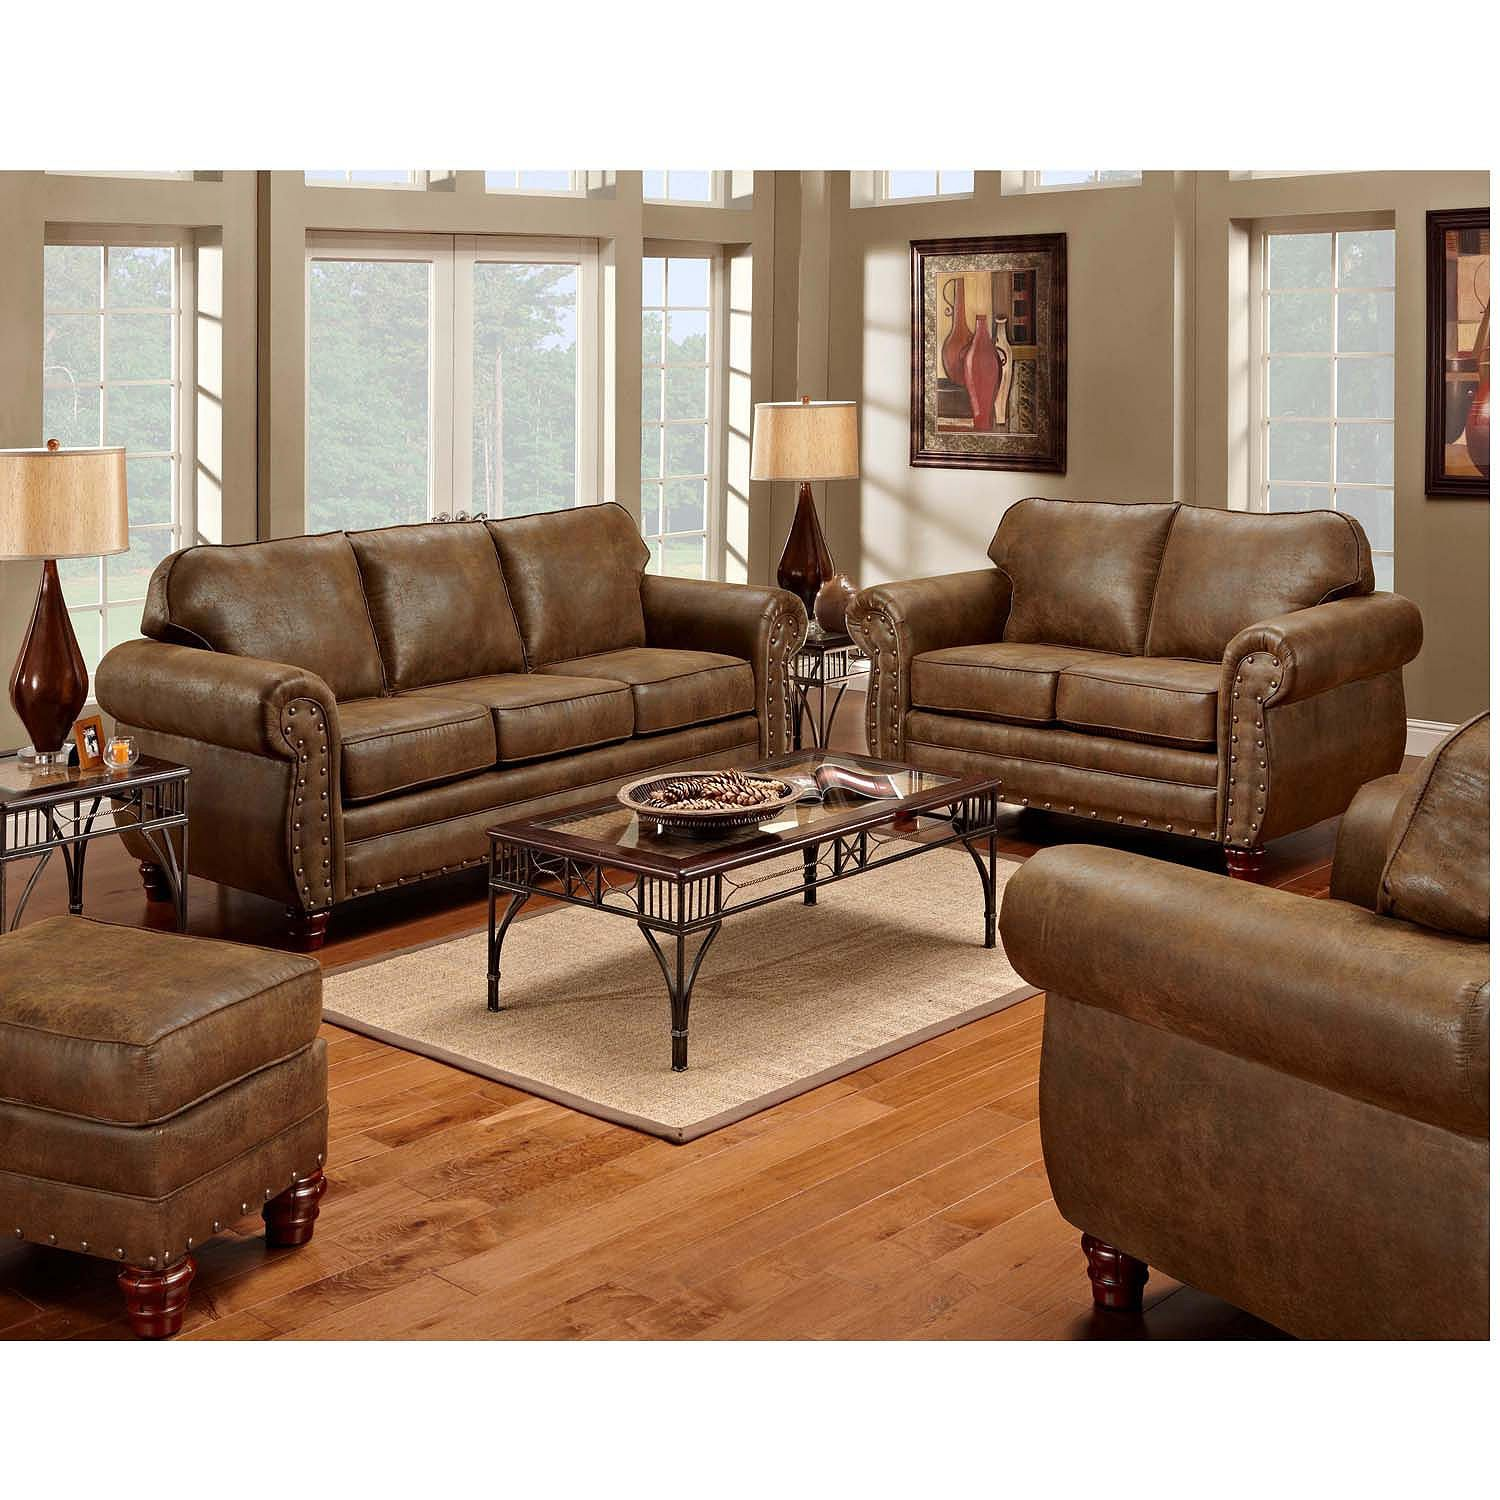 Lawrence 3 Piece Reclining Set Sofa Console Loveseat Glider Recliner Various Colors Sam S Club In 2020 4 Piece Living Room Set Living Room Leather Living Room Sets #sams #living #room #furniture